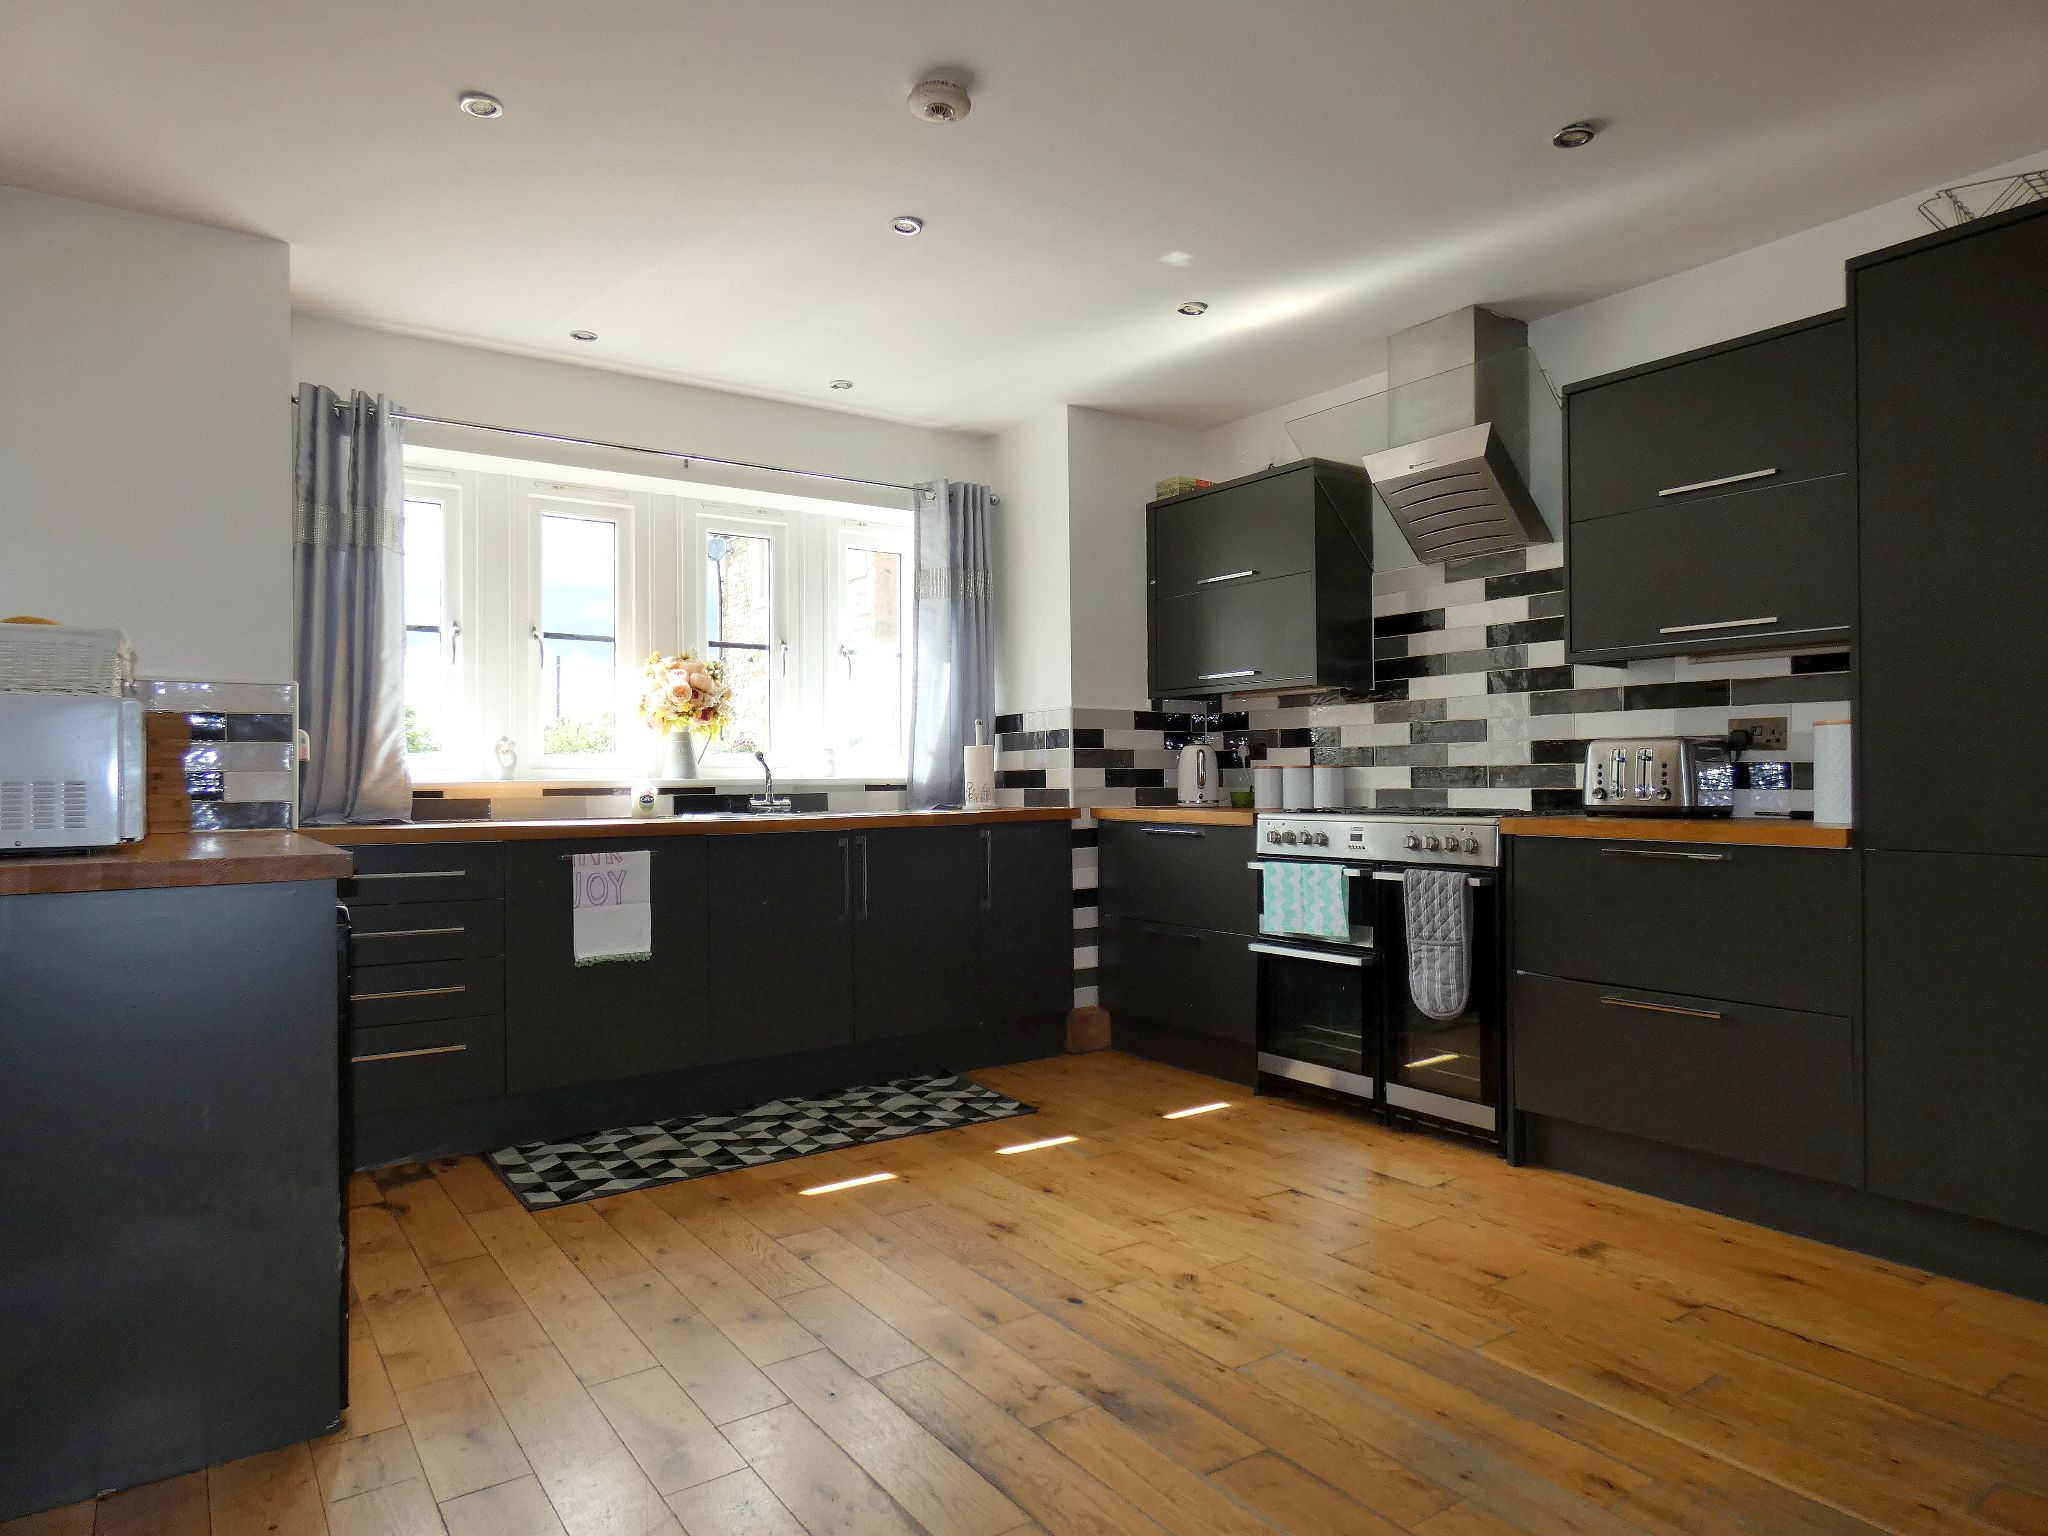 6 bedroom detached house For Sale in Bishop Auckland - Kitchen Diner.